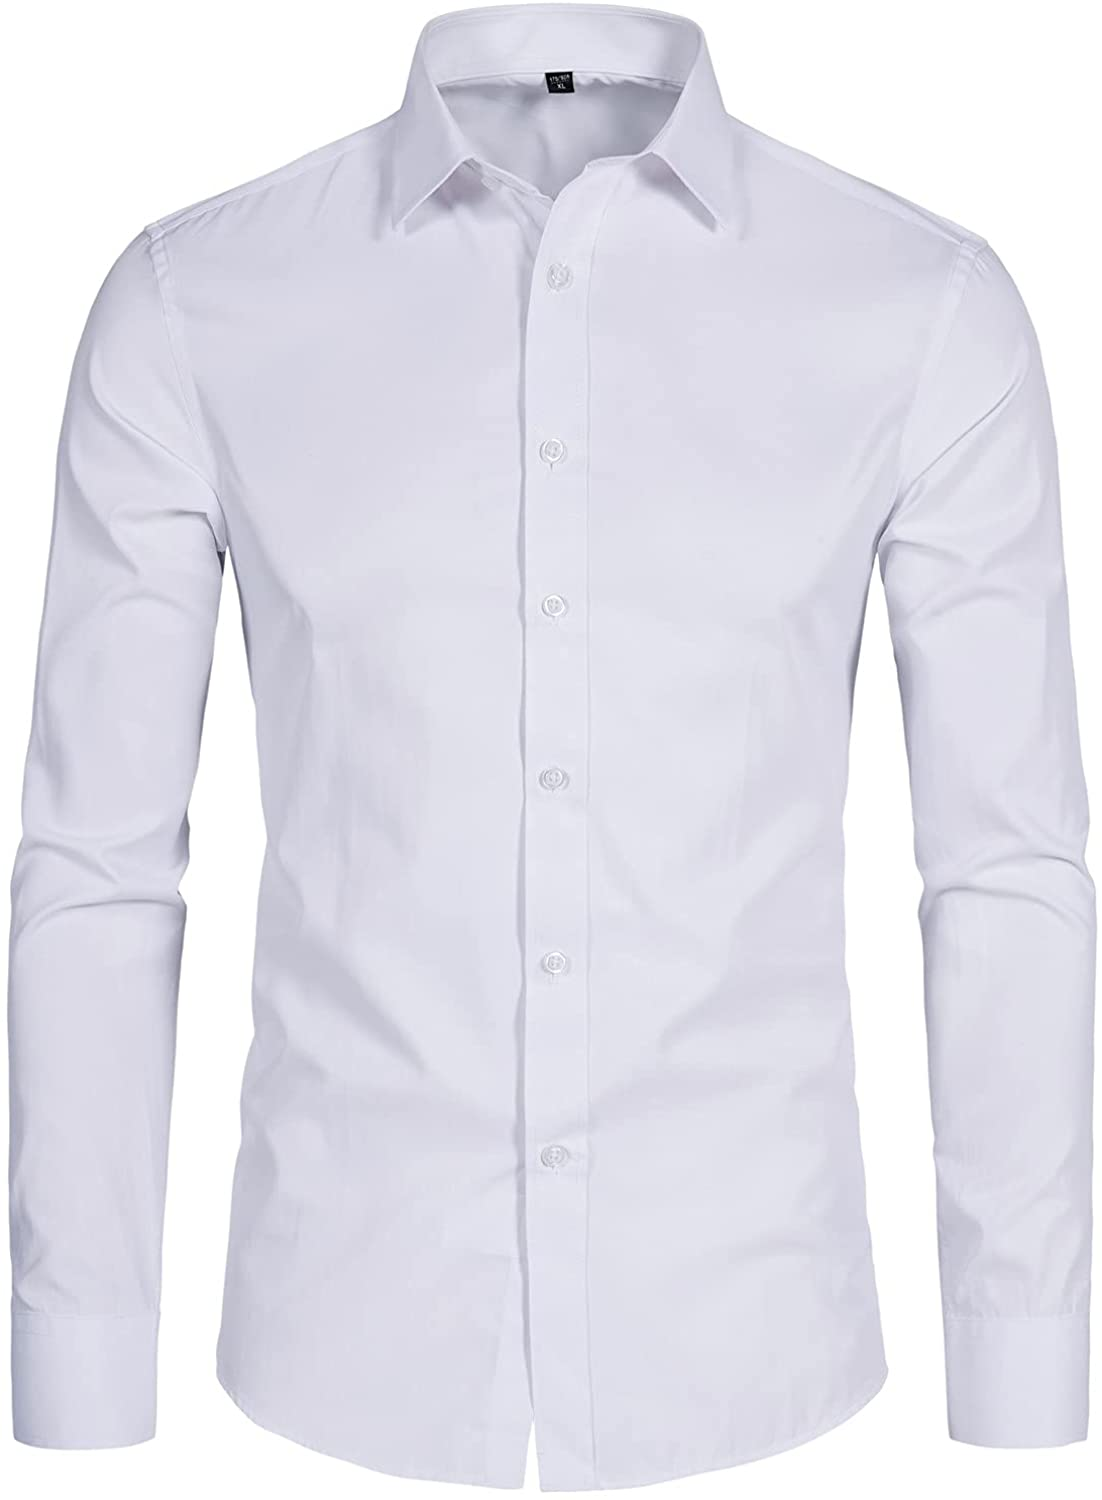 DELCARINO Men's Long Sleeve Button Up Slim Shirts Brand new Casu Regular discount Solid Fit